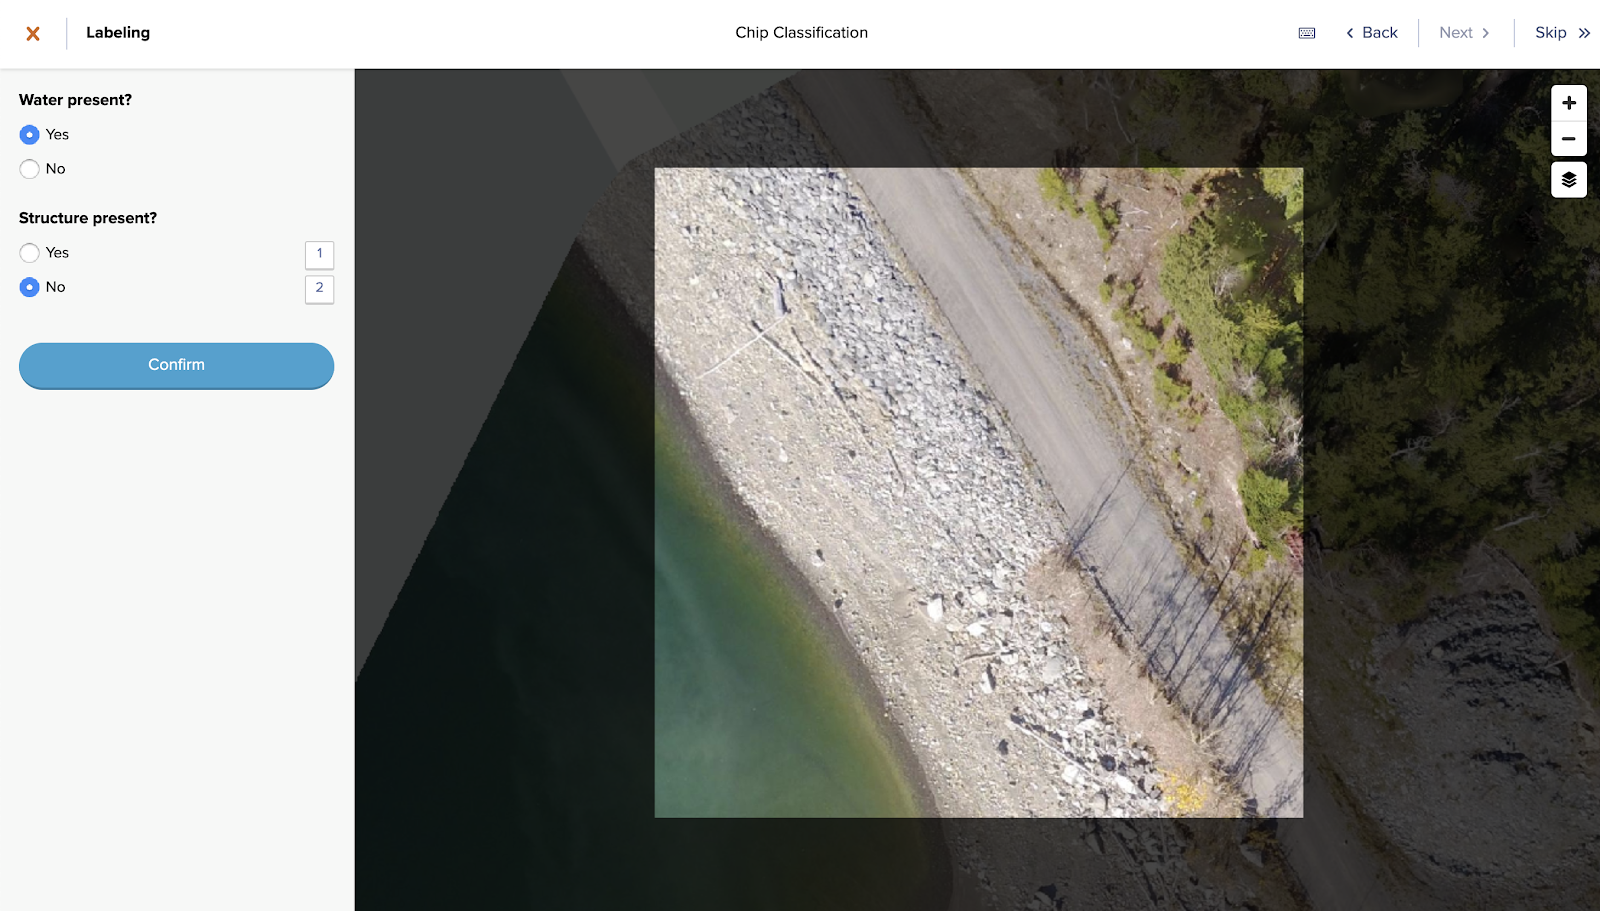 A screen shot of the GroundWork labeling tool. The labeler is asked to classify an image of a beachside road as having water and/or structures.